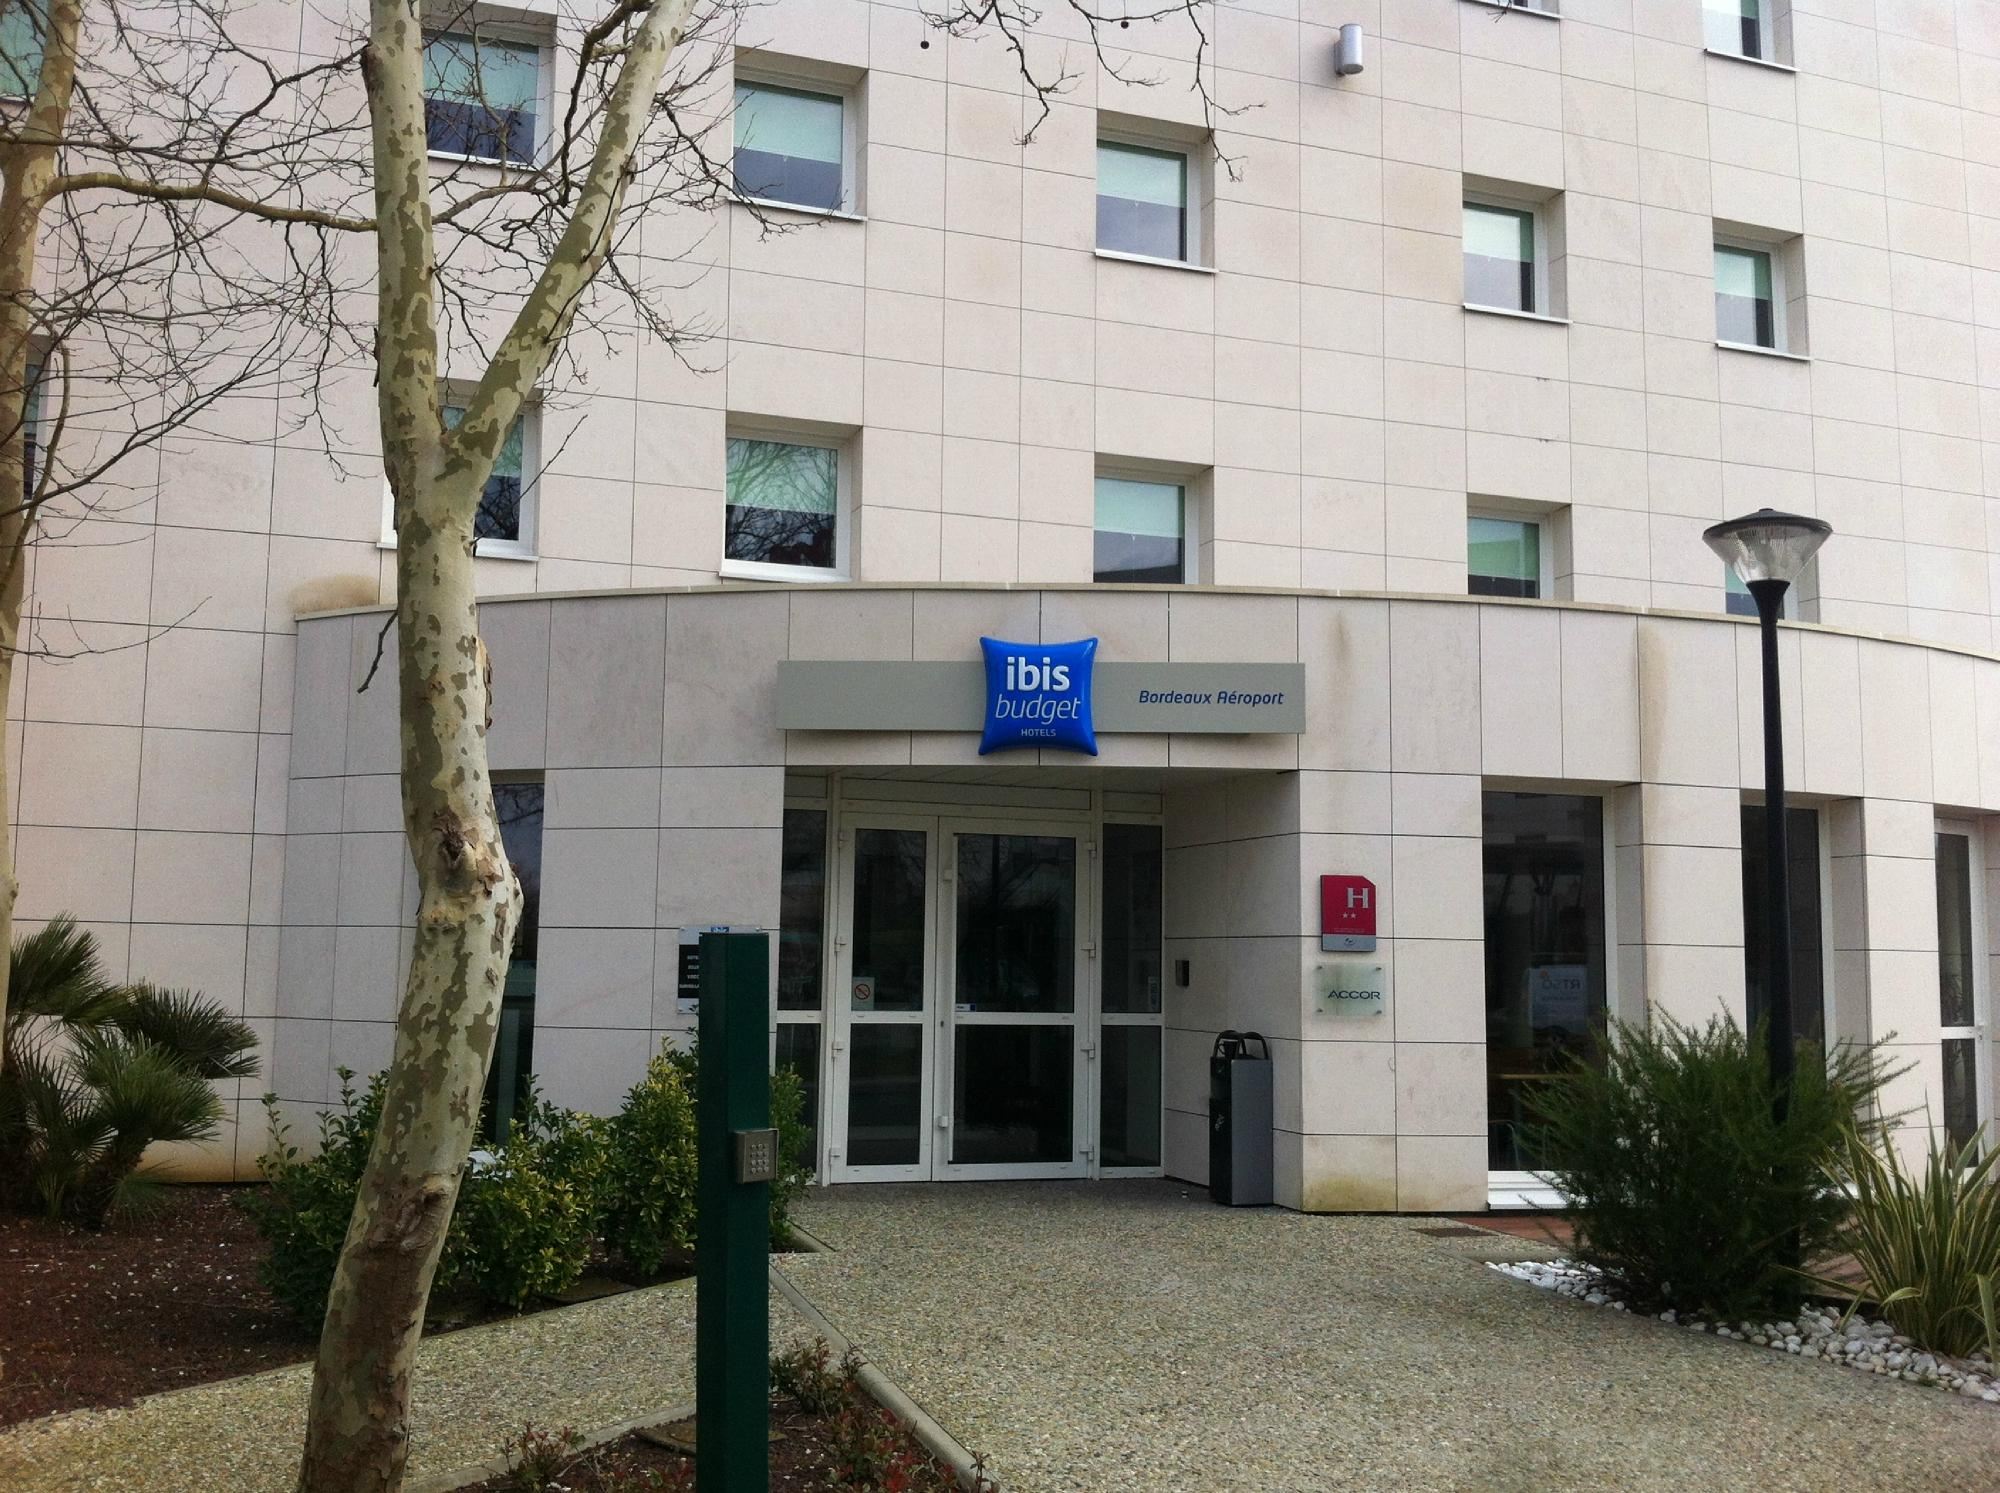 Ibis Budget Bordeaux Aeroport